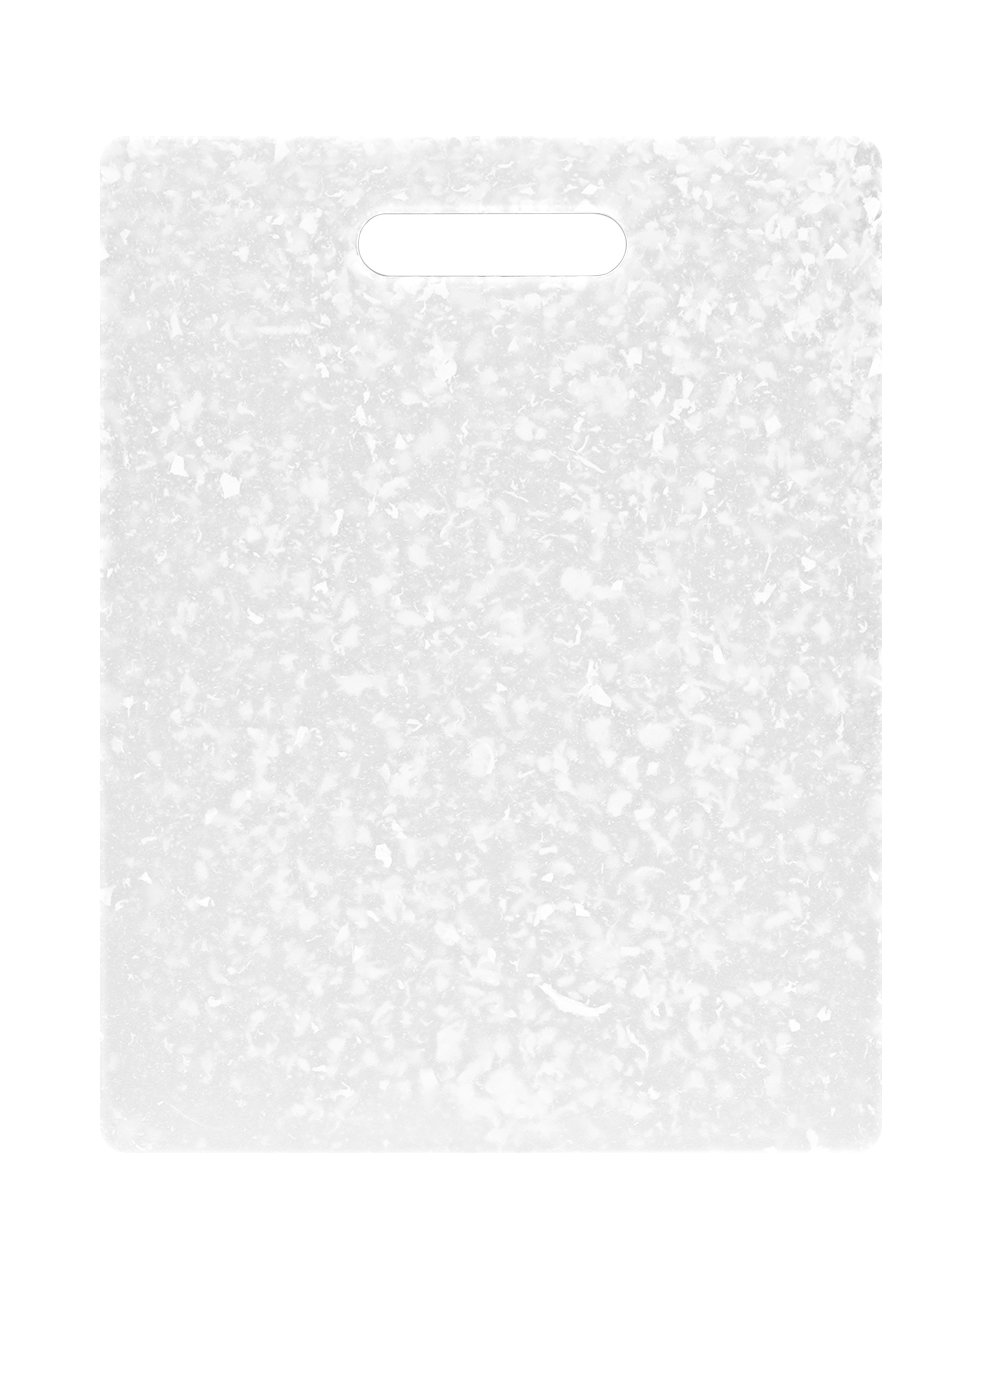 Dexas Jelli Cutting Board, 8.5 by 11 inches, Natural and White Granite Pattern